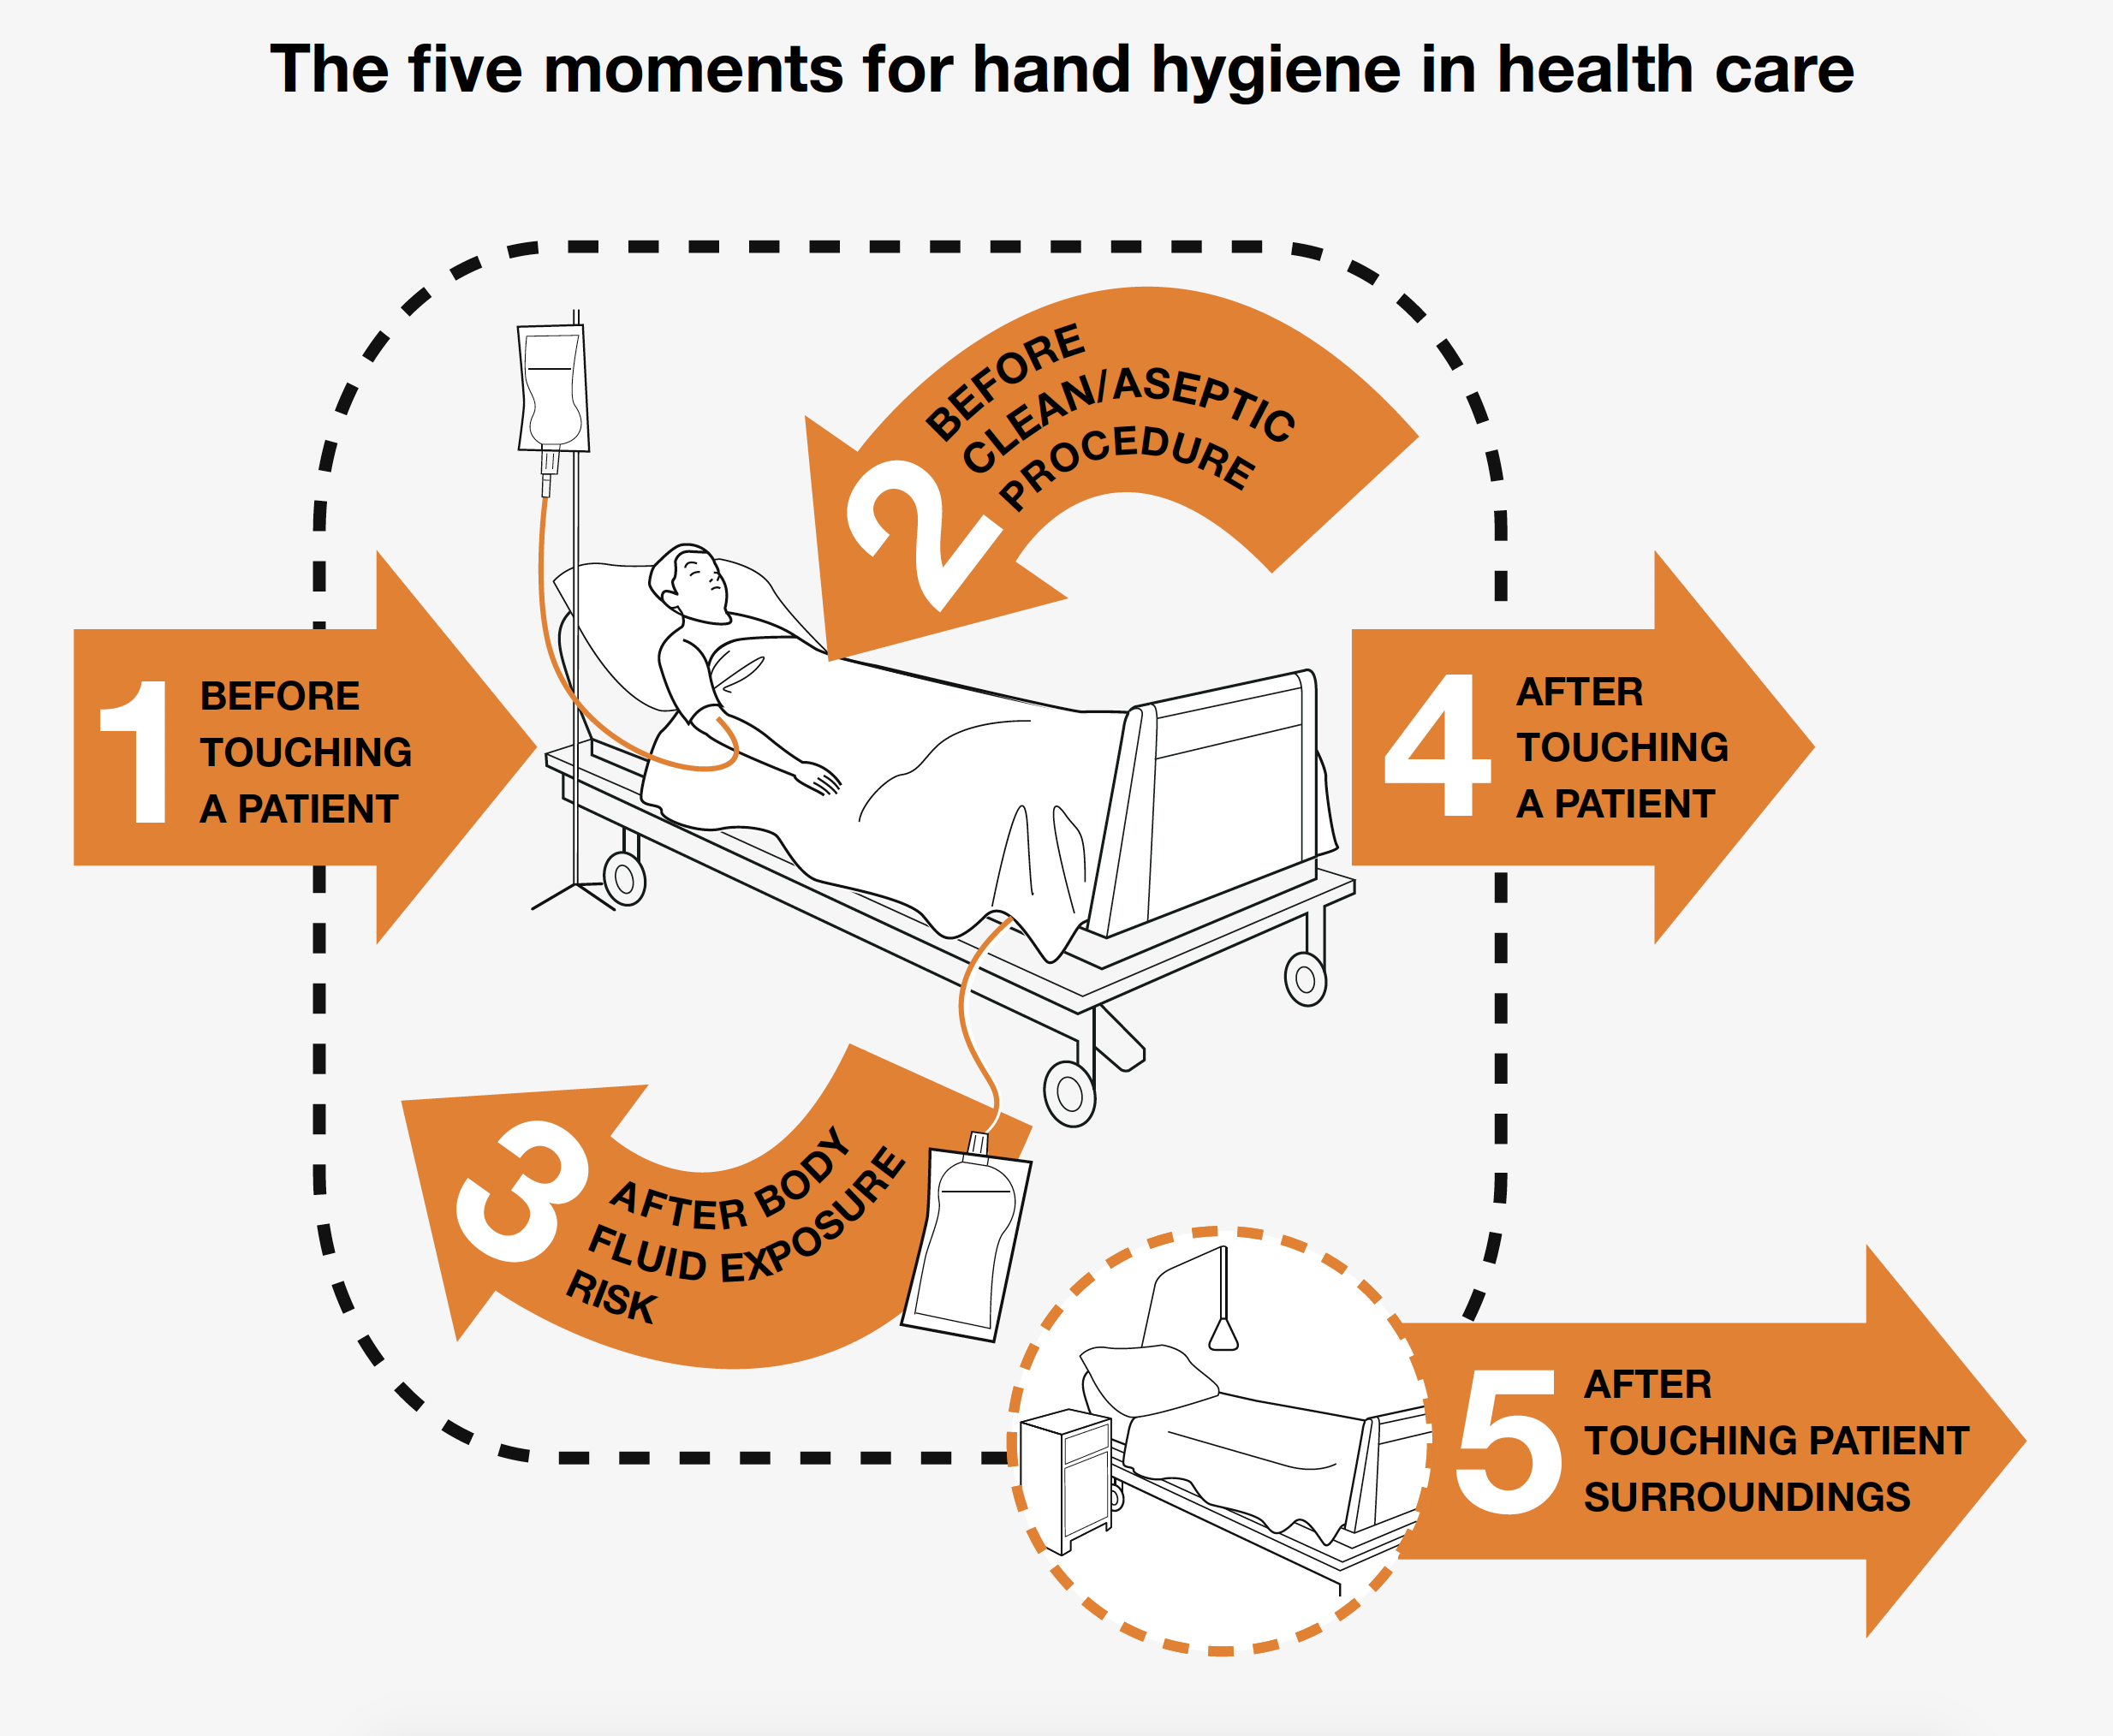 The five moments for hand hygiene in health care